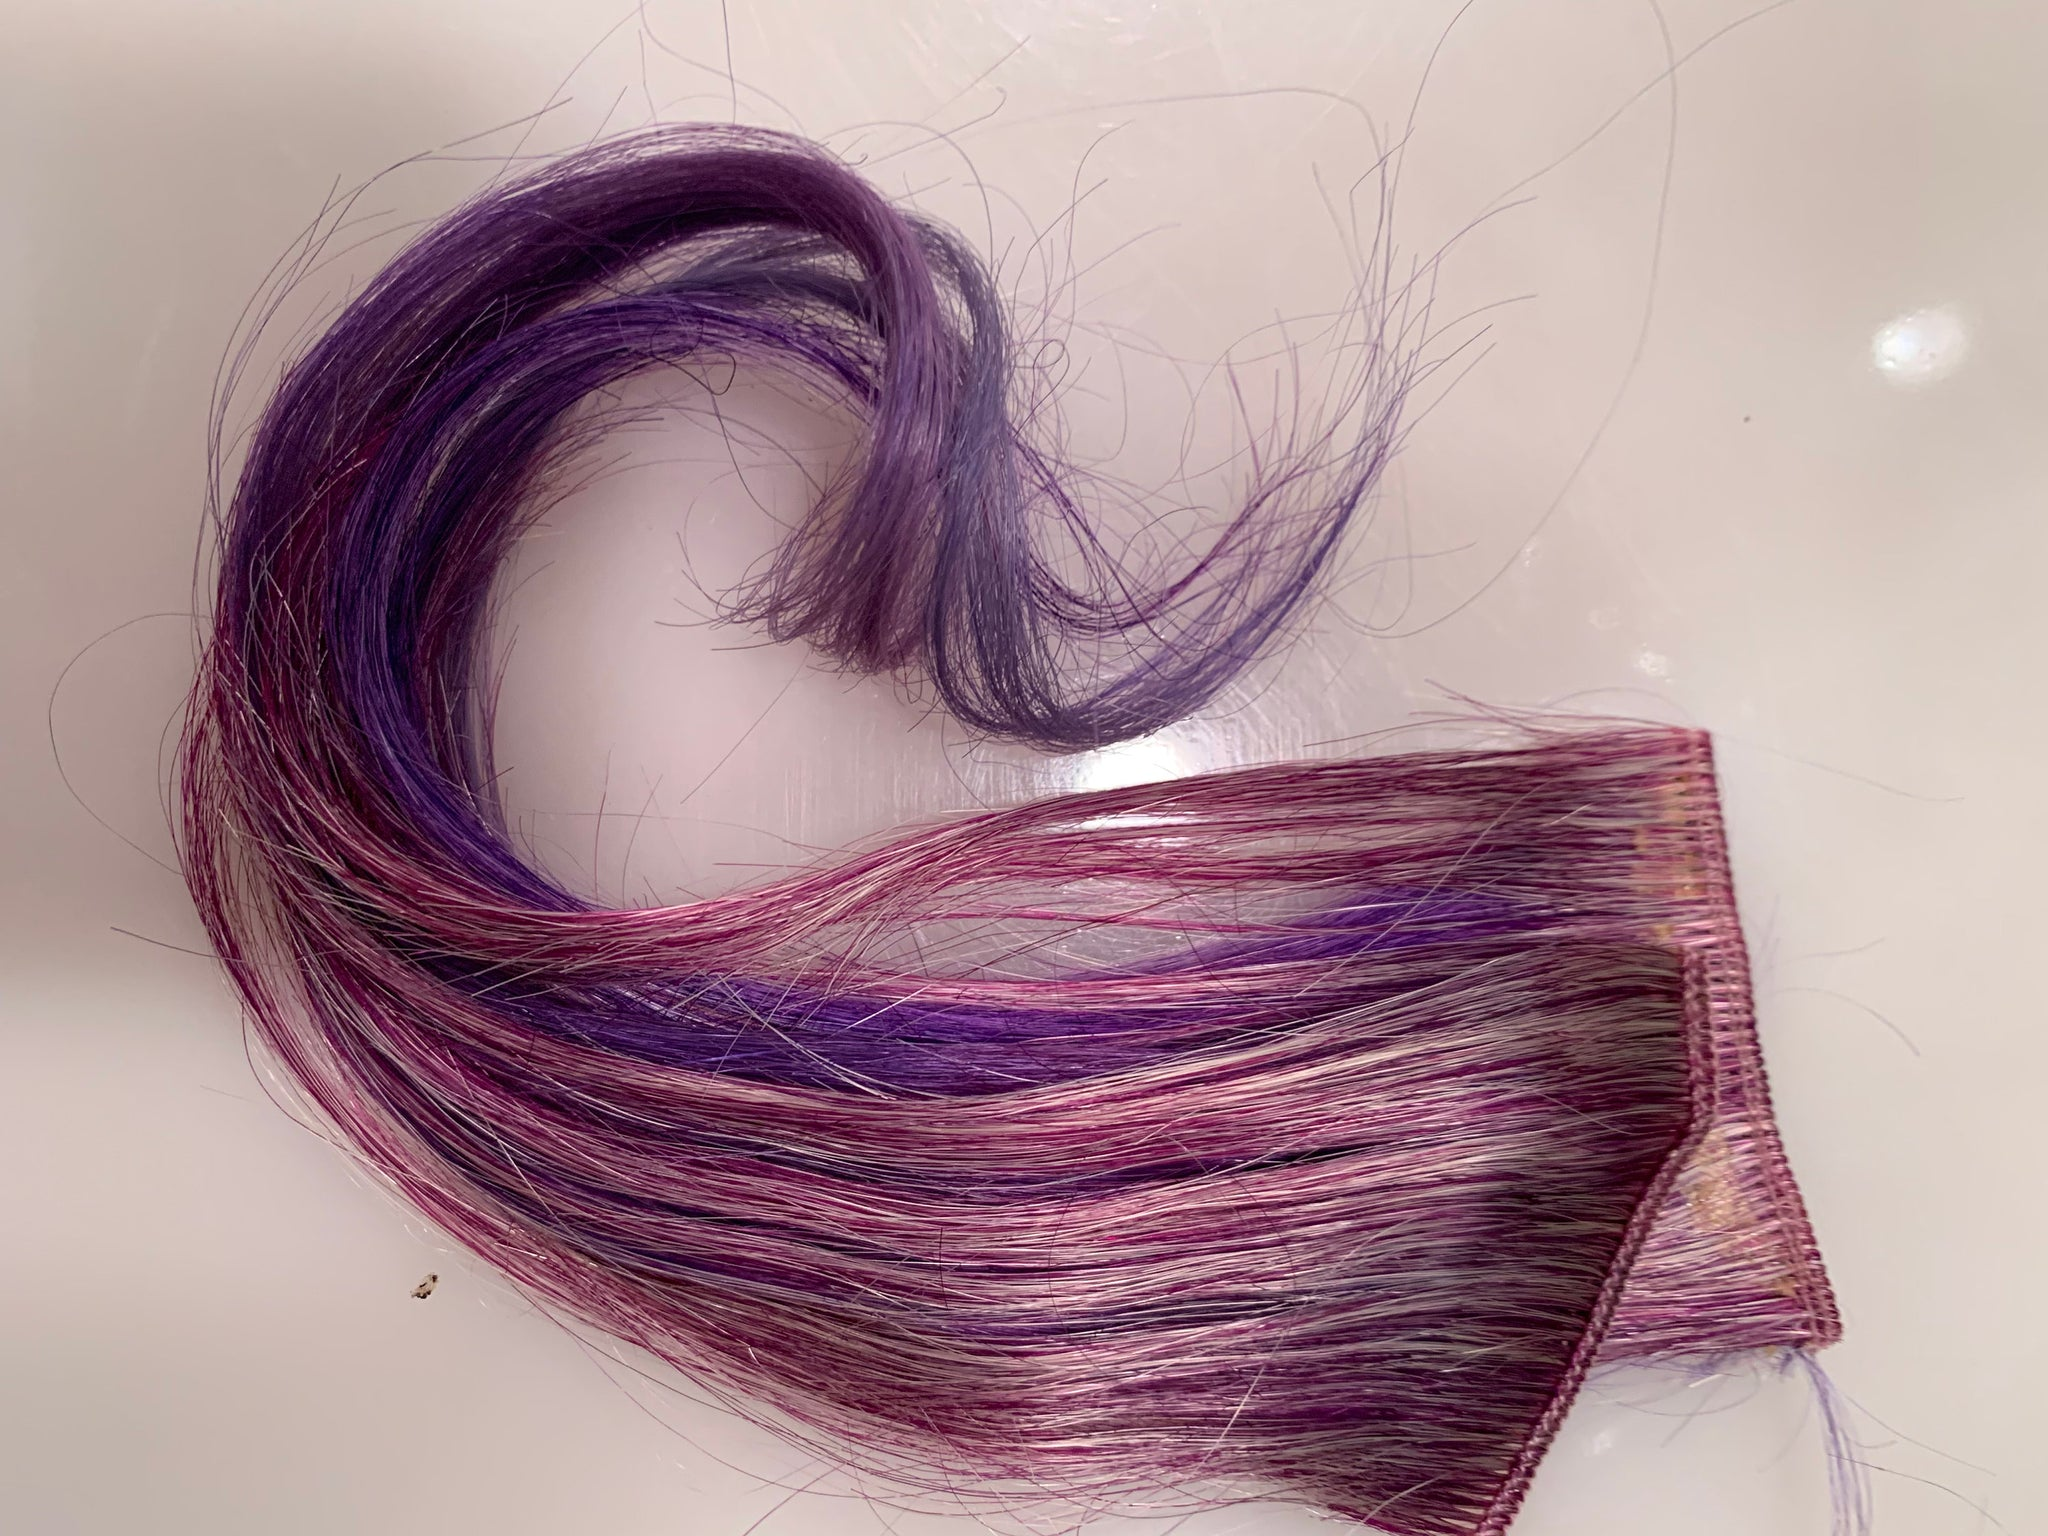 Purple Violet Lavender Pink Ice in 100% Human Hair Extensions Streaks 12 inches long Set of 2